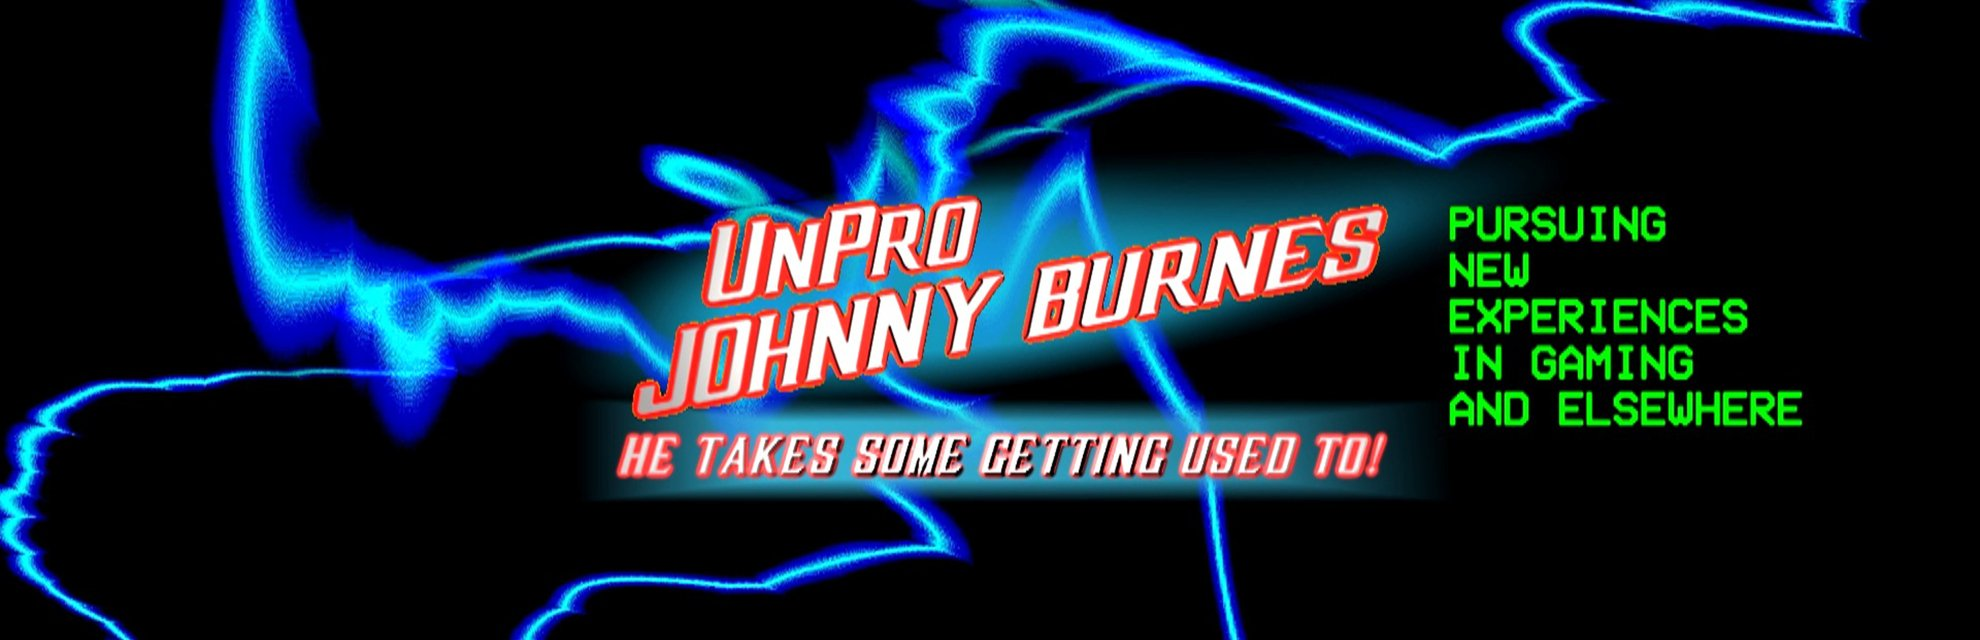 Johnny Burnes blog header photo